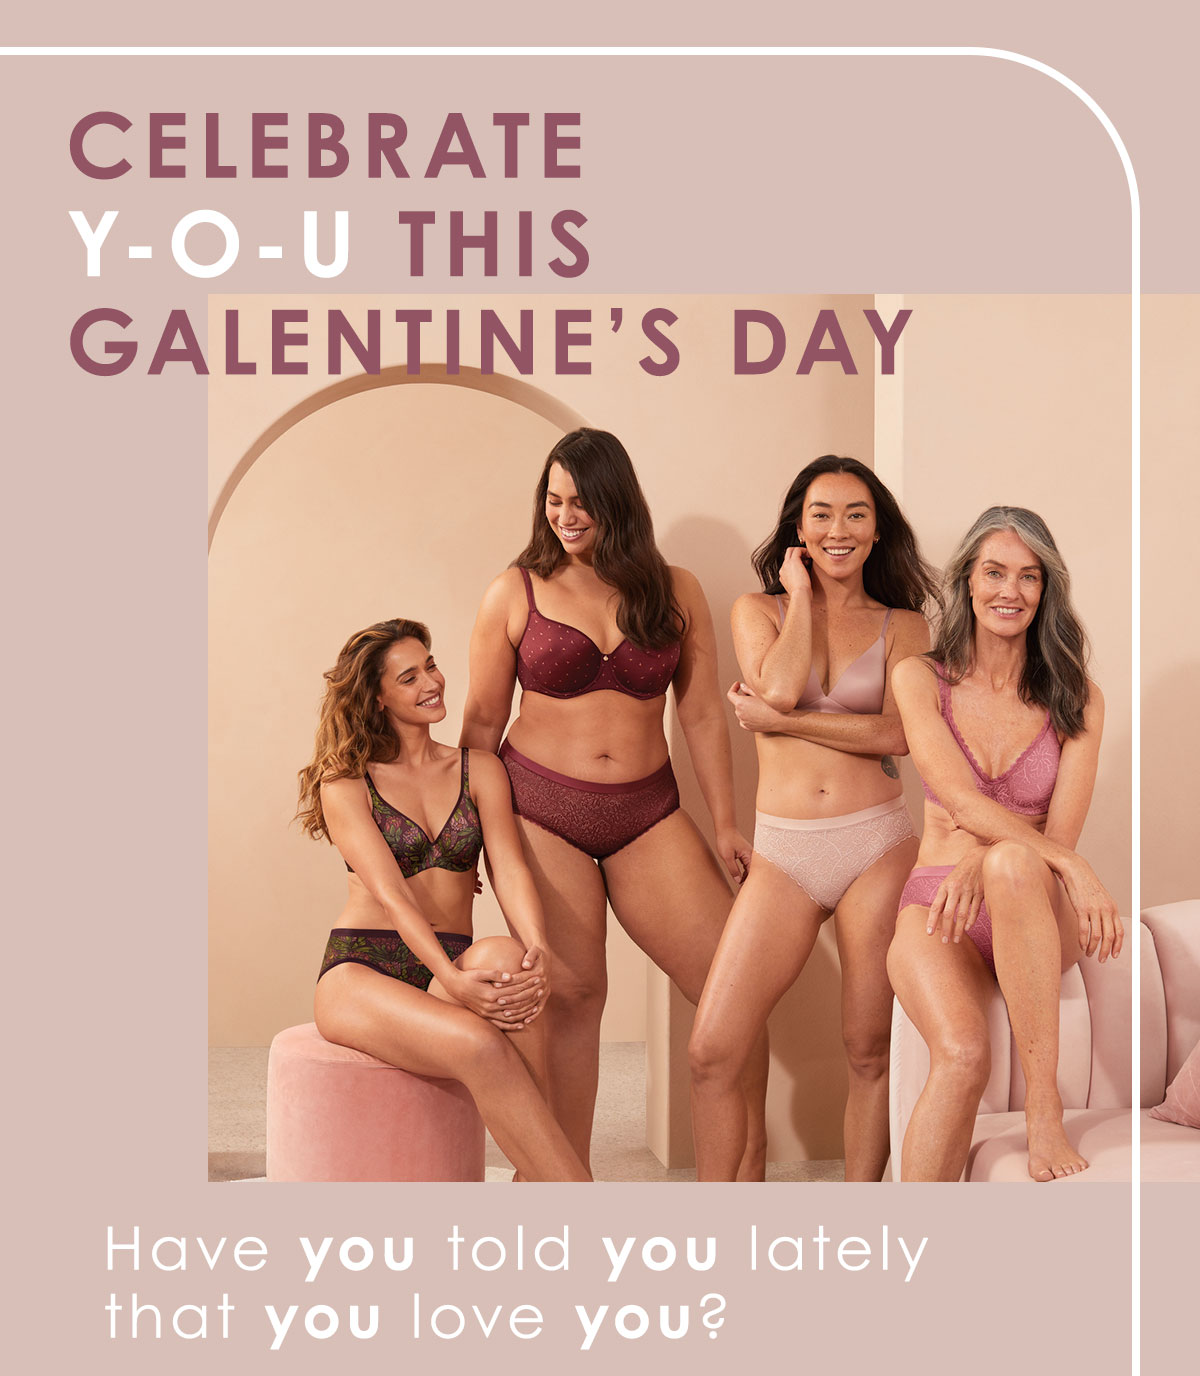 Celebrate you this Galentine's Day.